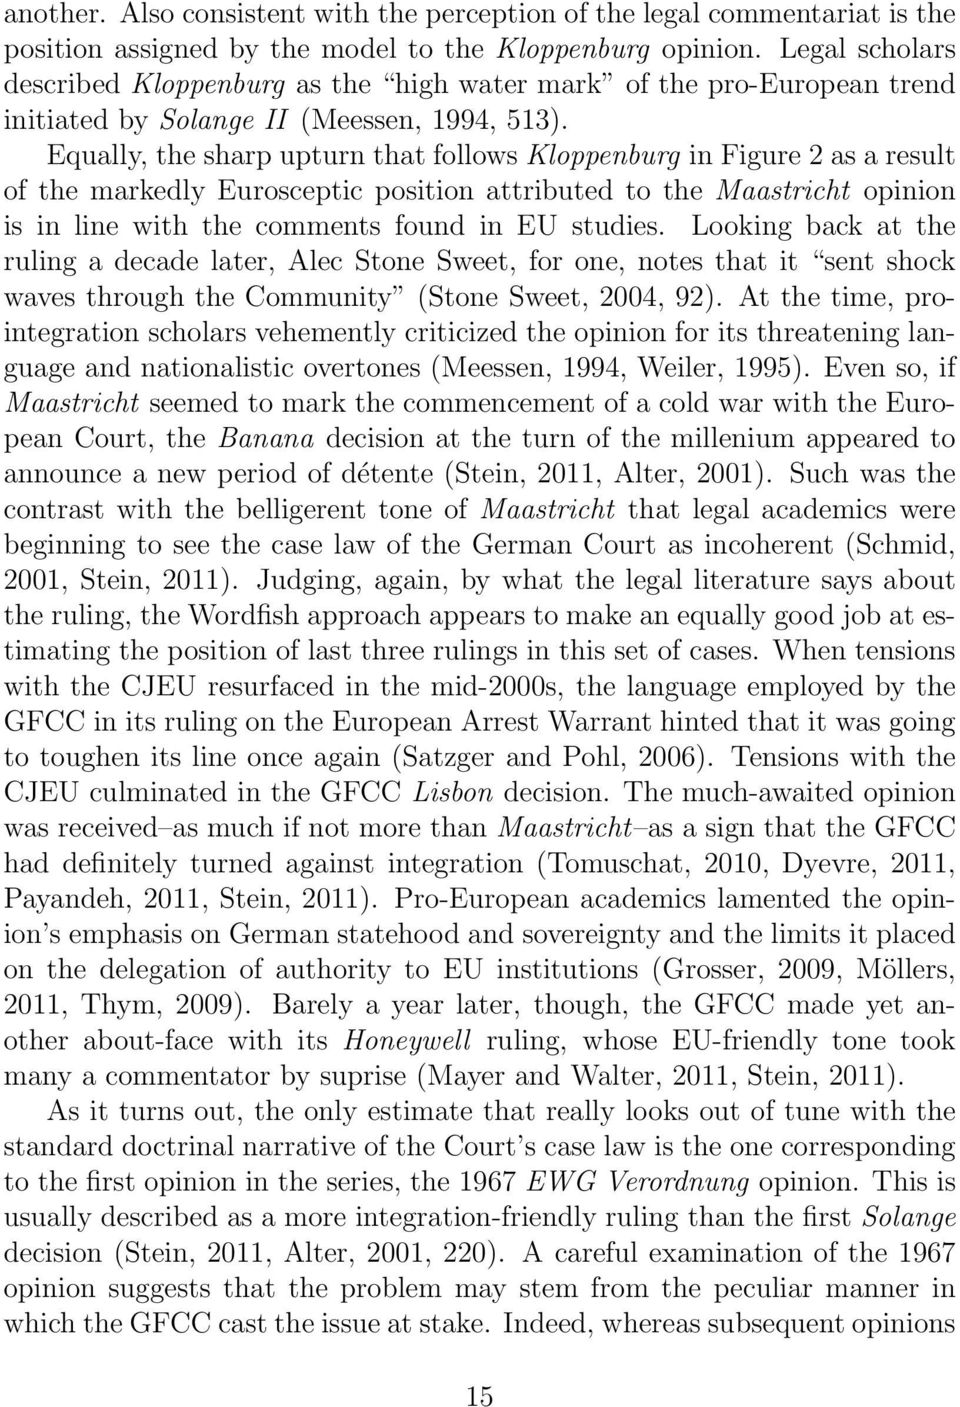 Equally, the sharp upturn that follows Kloppenburg in Figure 2 as a result of the markedly Eurosceptic position attributed to the Maastricht opinion is in line with the comments found in EU studies.